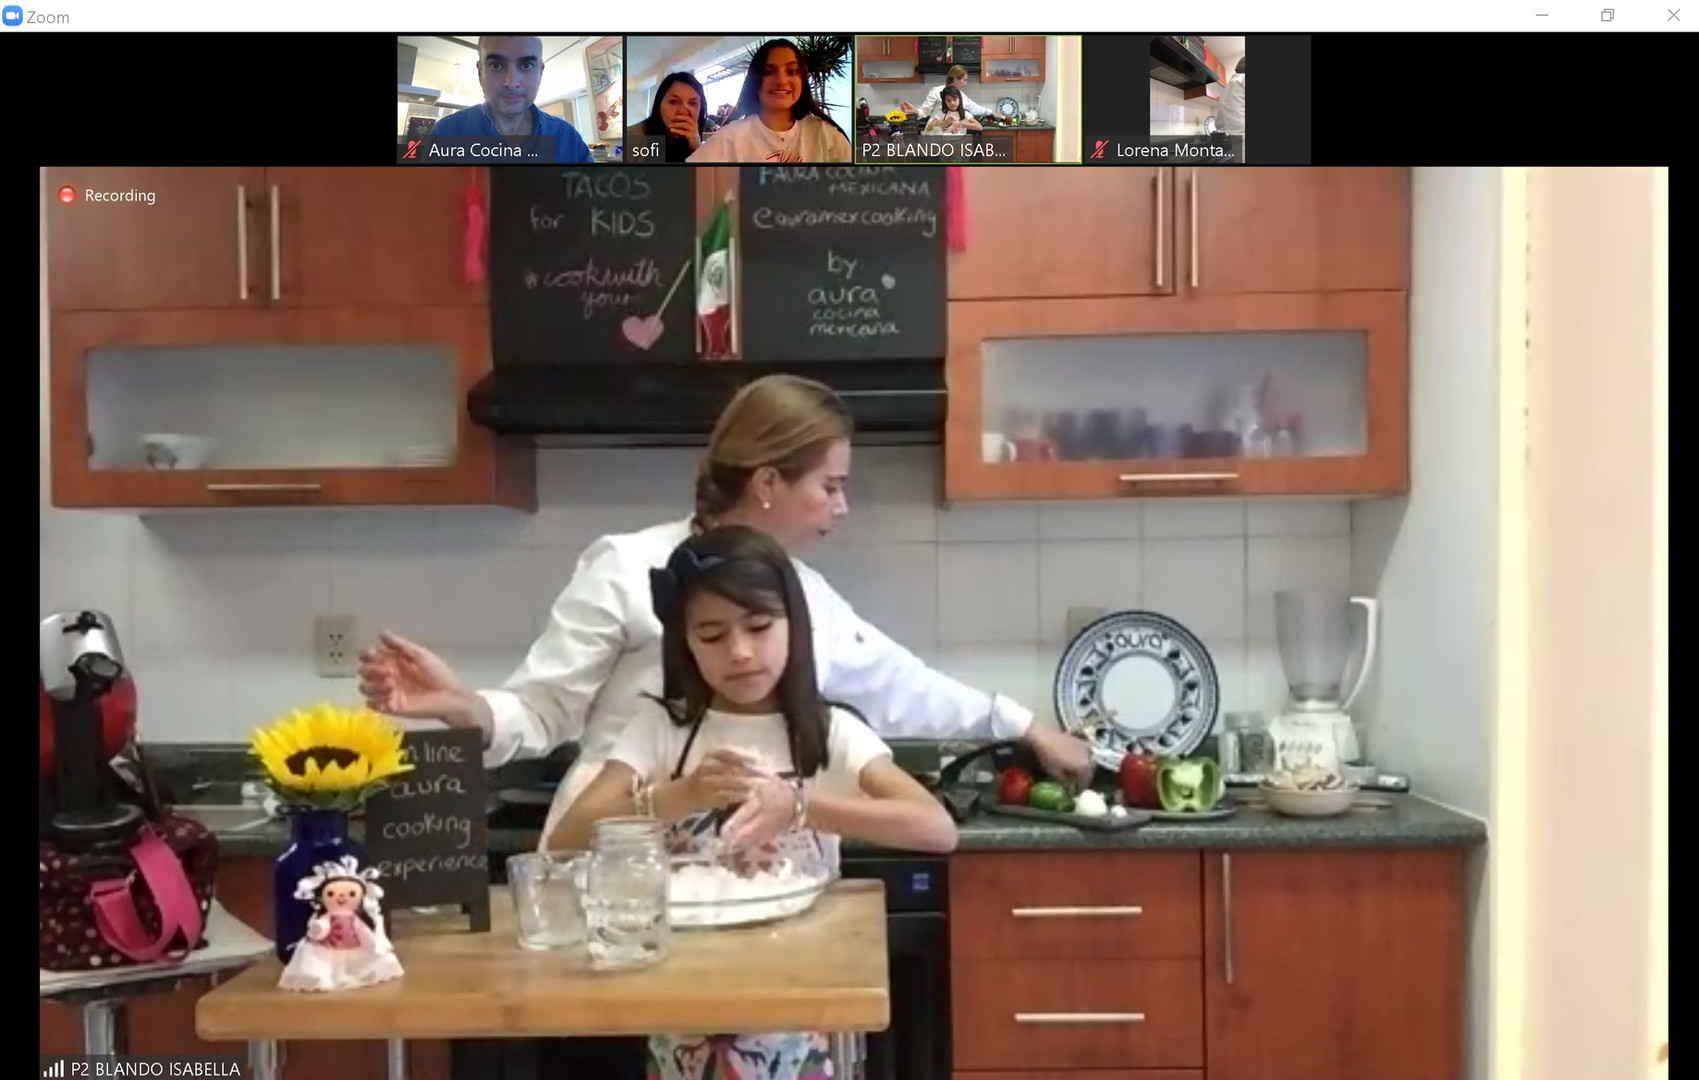 Mexican Online Cooking Class